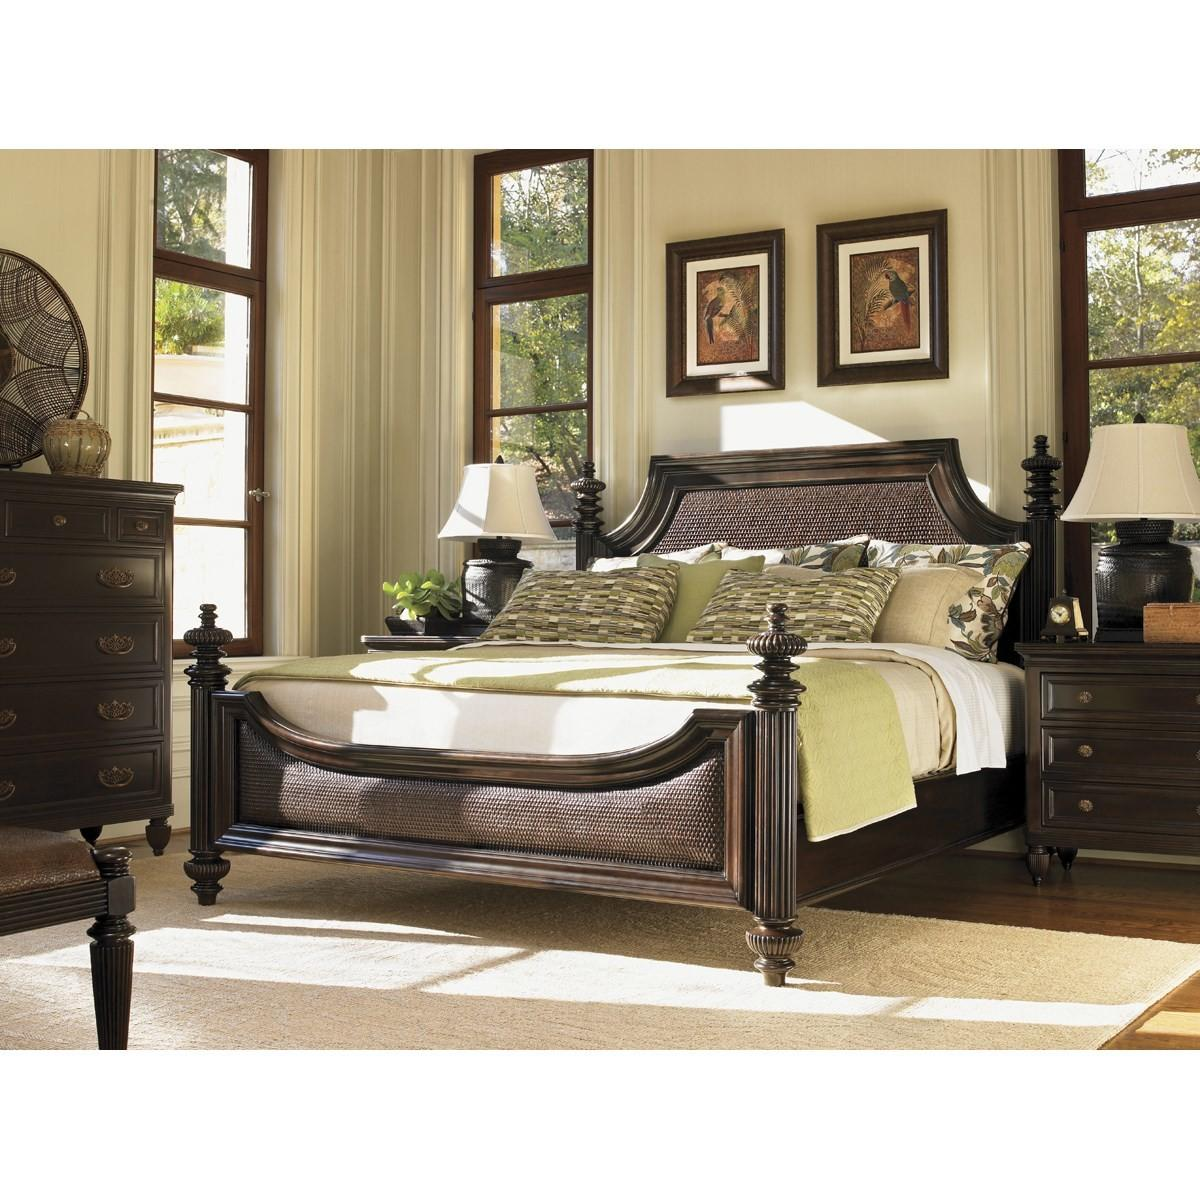 Tommy Bahama 537 134c Royal Kahala Harbour King Point Bed